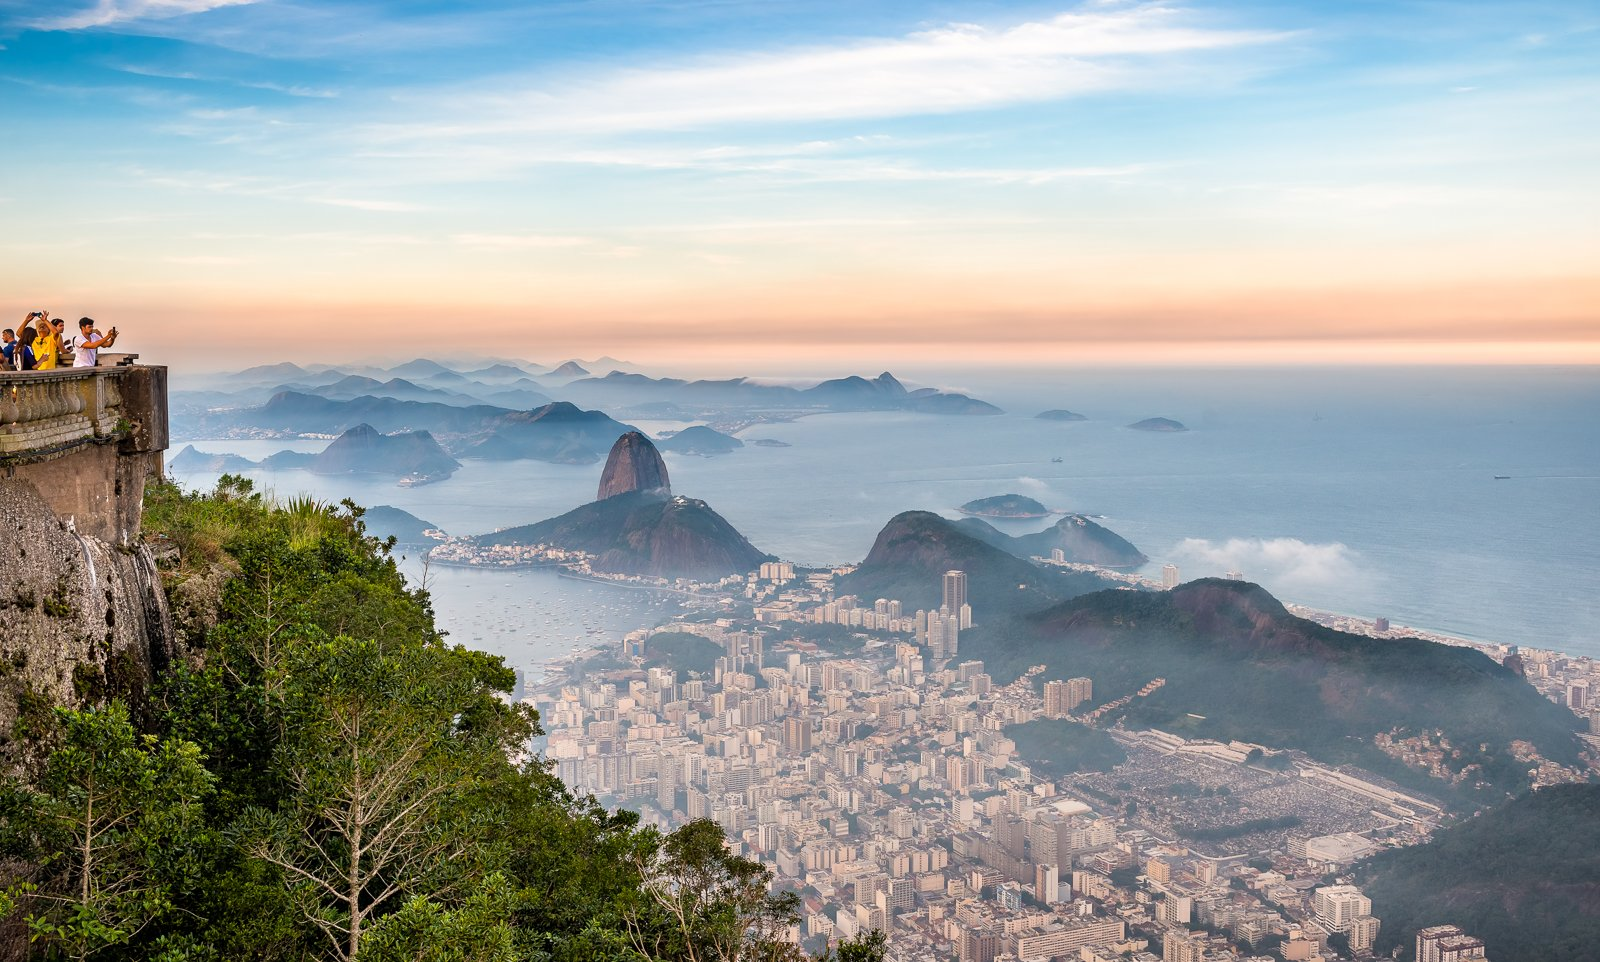 Capturing the Panoramic Views of Rio de Janeiro